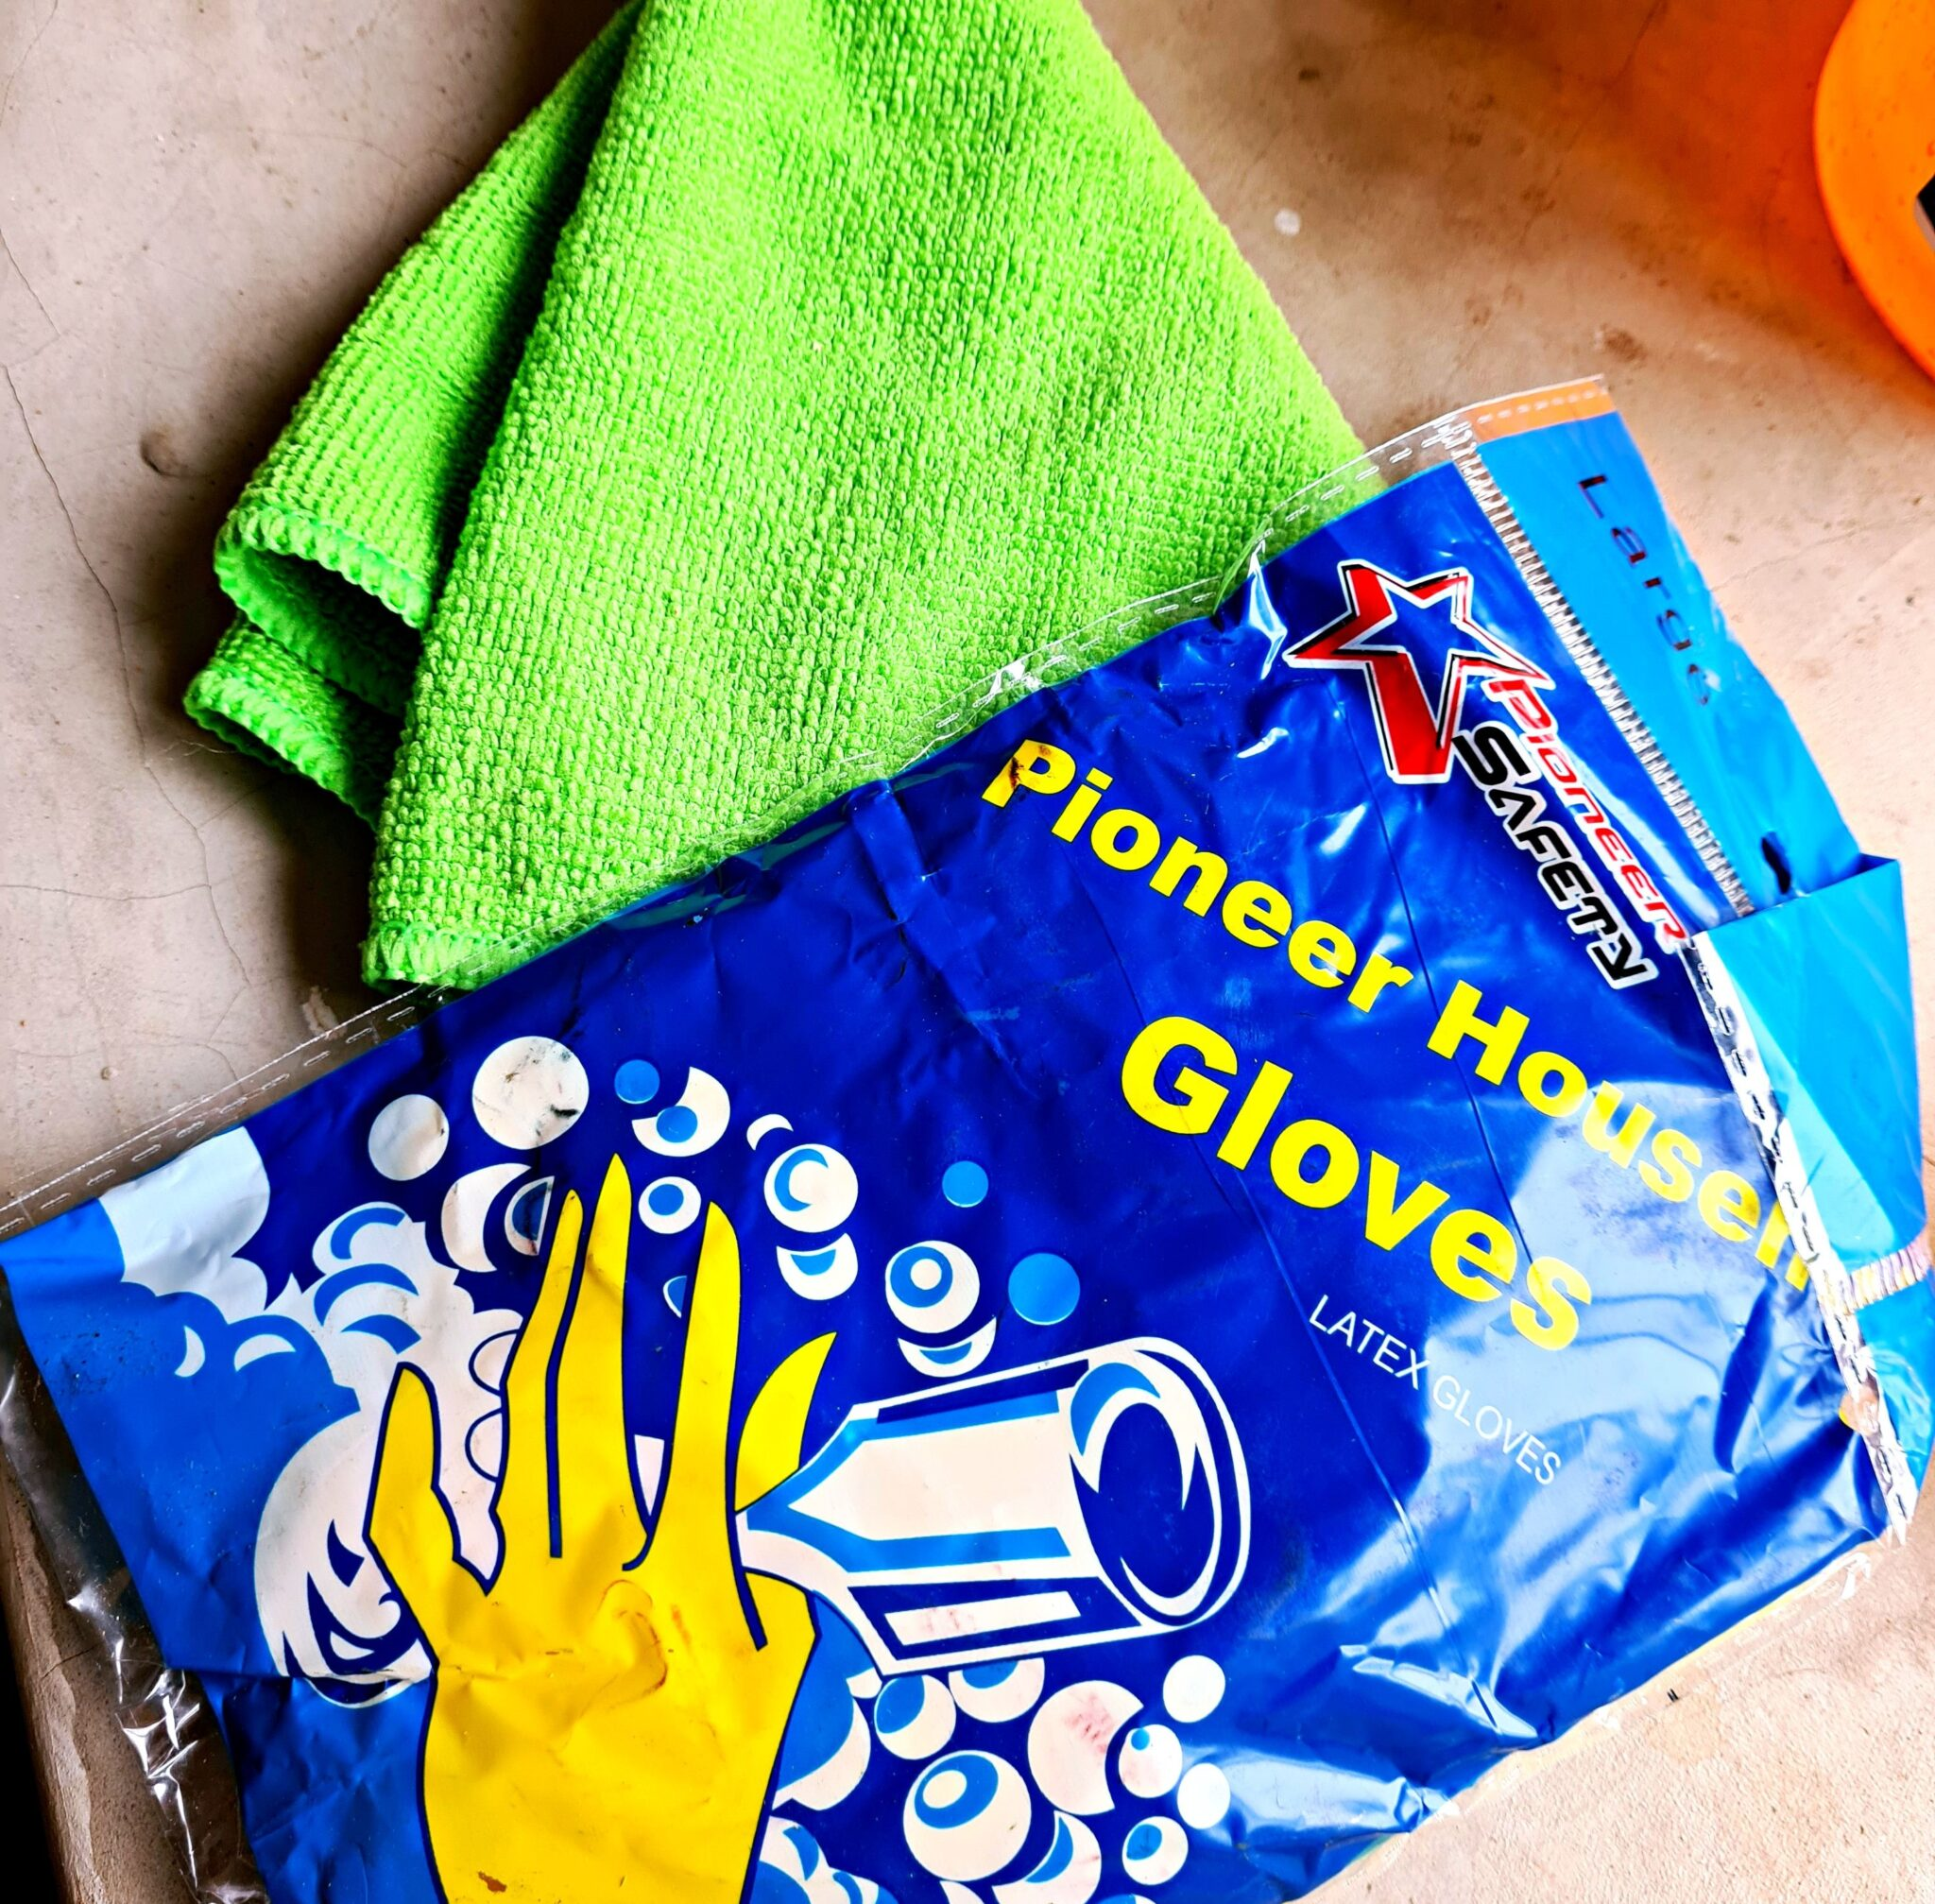 HALL'S RETAIL CLEANING TOOLS